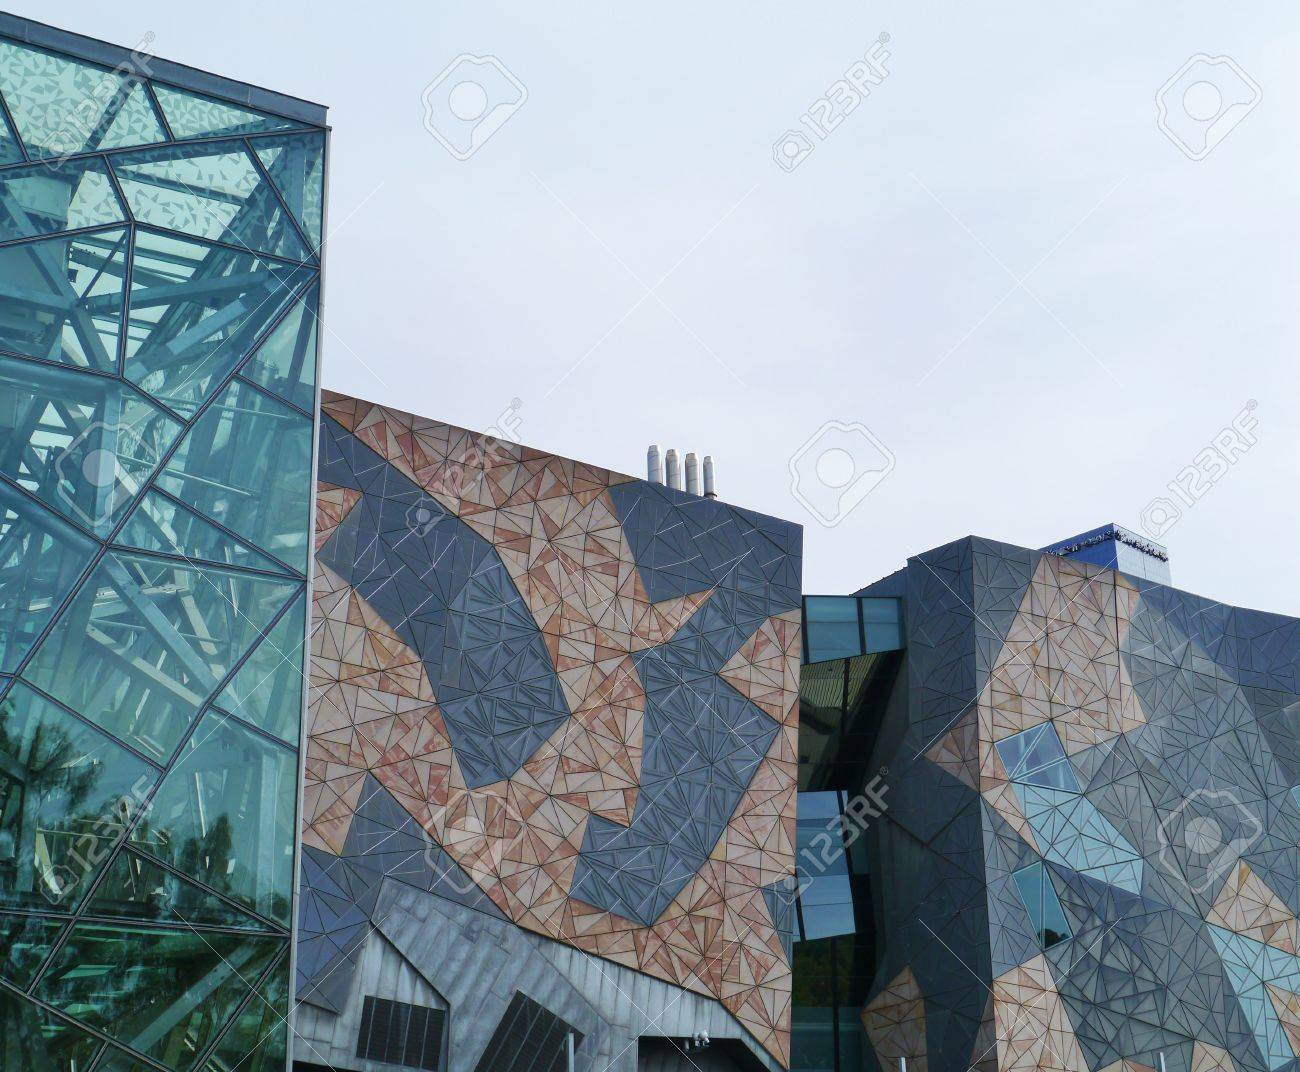 Modern Architecture Melbourne modern architecture on federation square in melbourne in australia